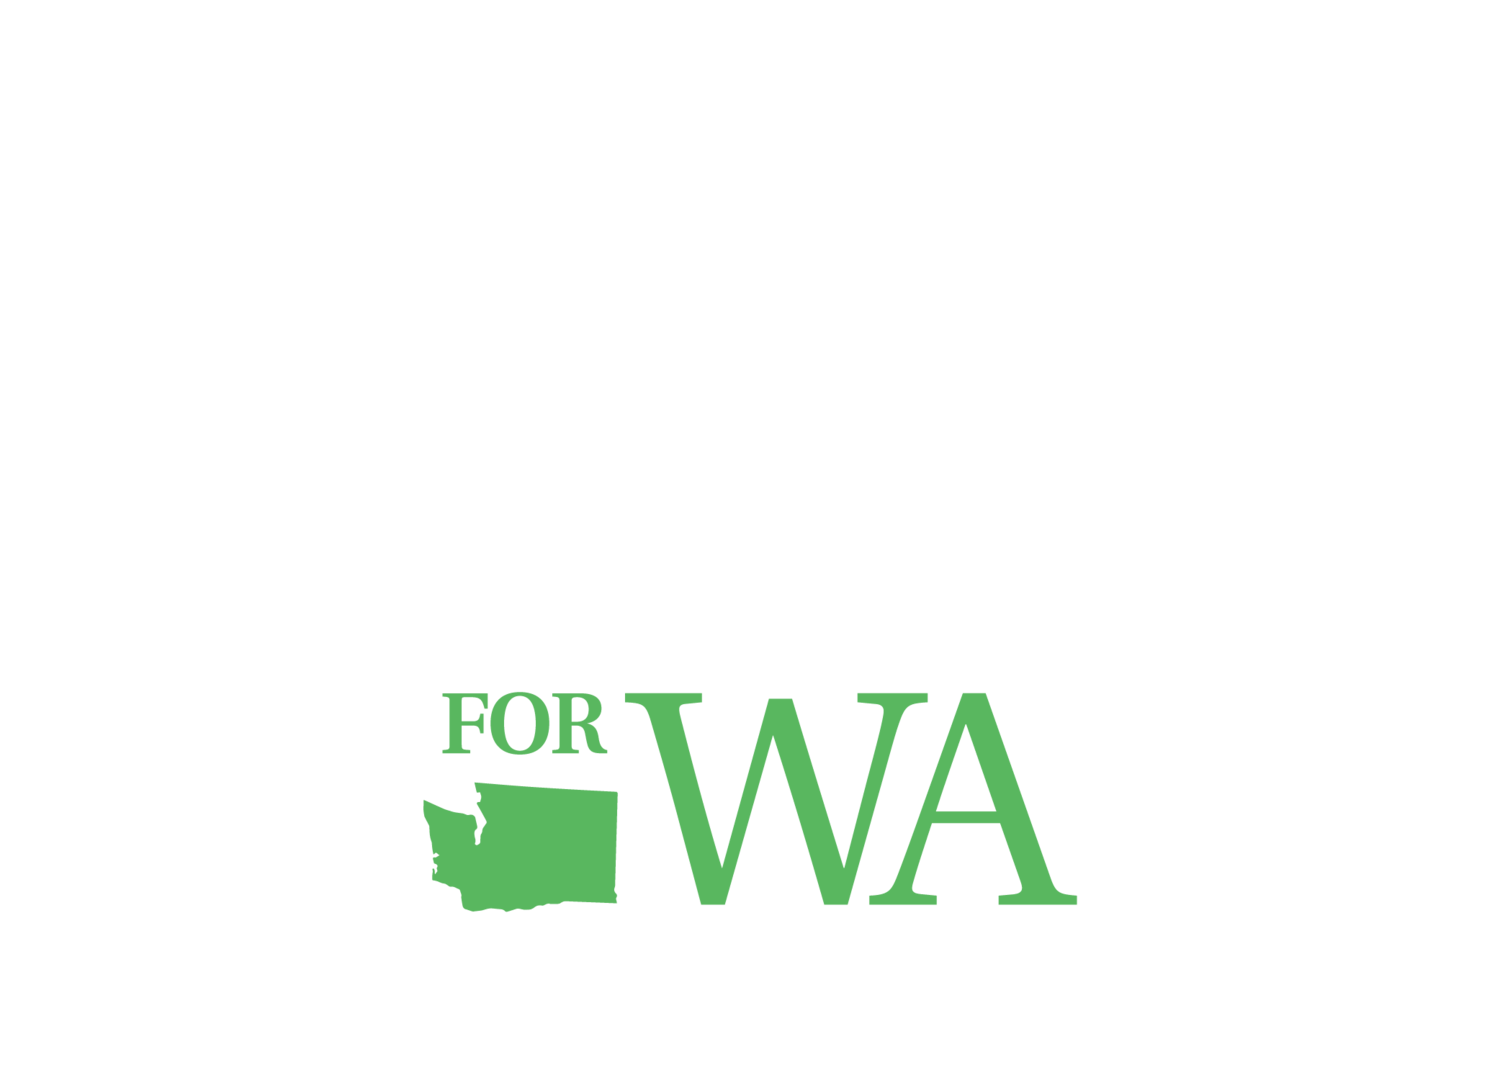 Alex Ramel For our State Representative (D)